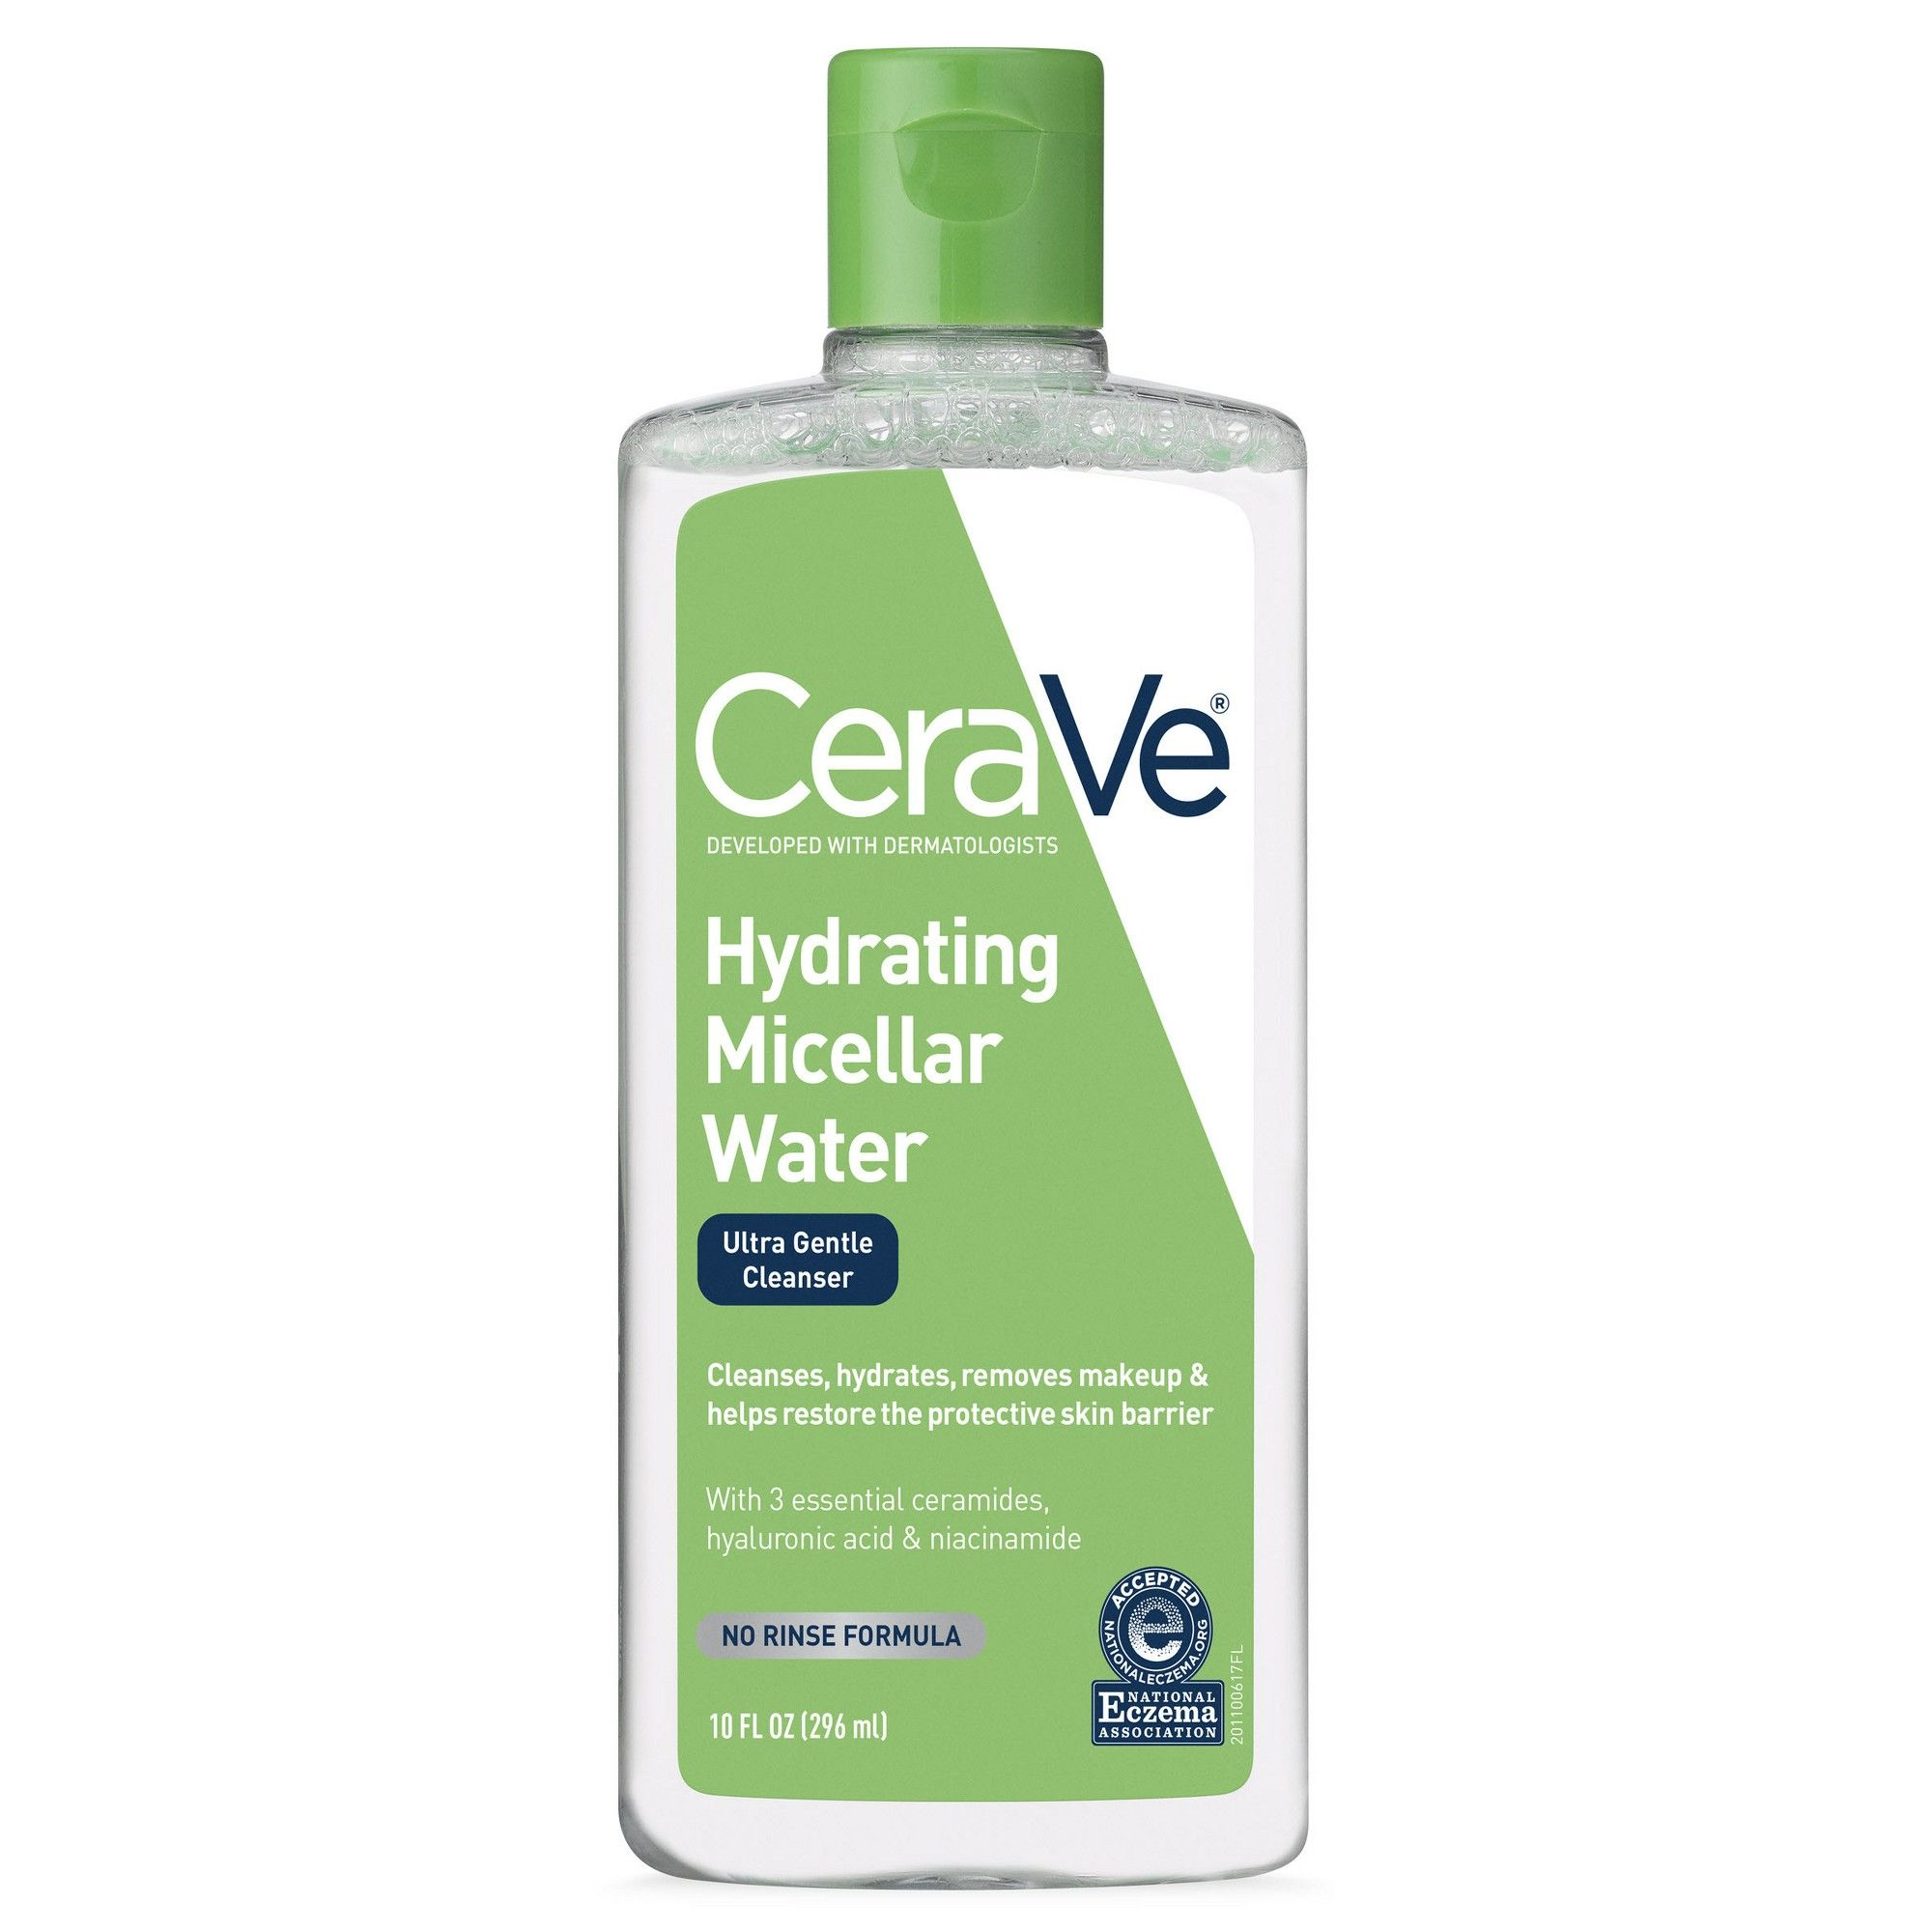 CeraVe Hydrating Micellar Cleansing Water, Ultra Gentle